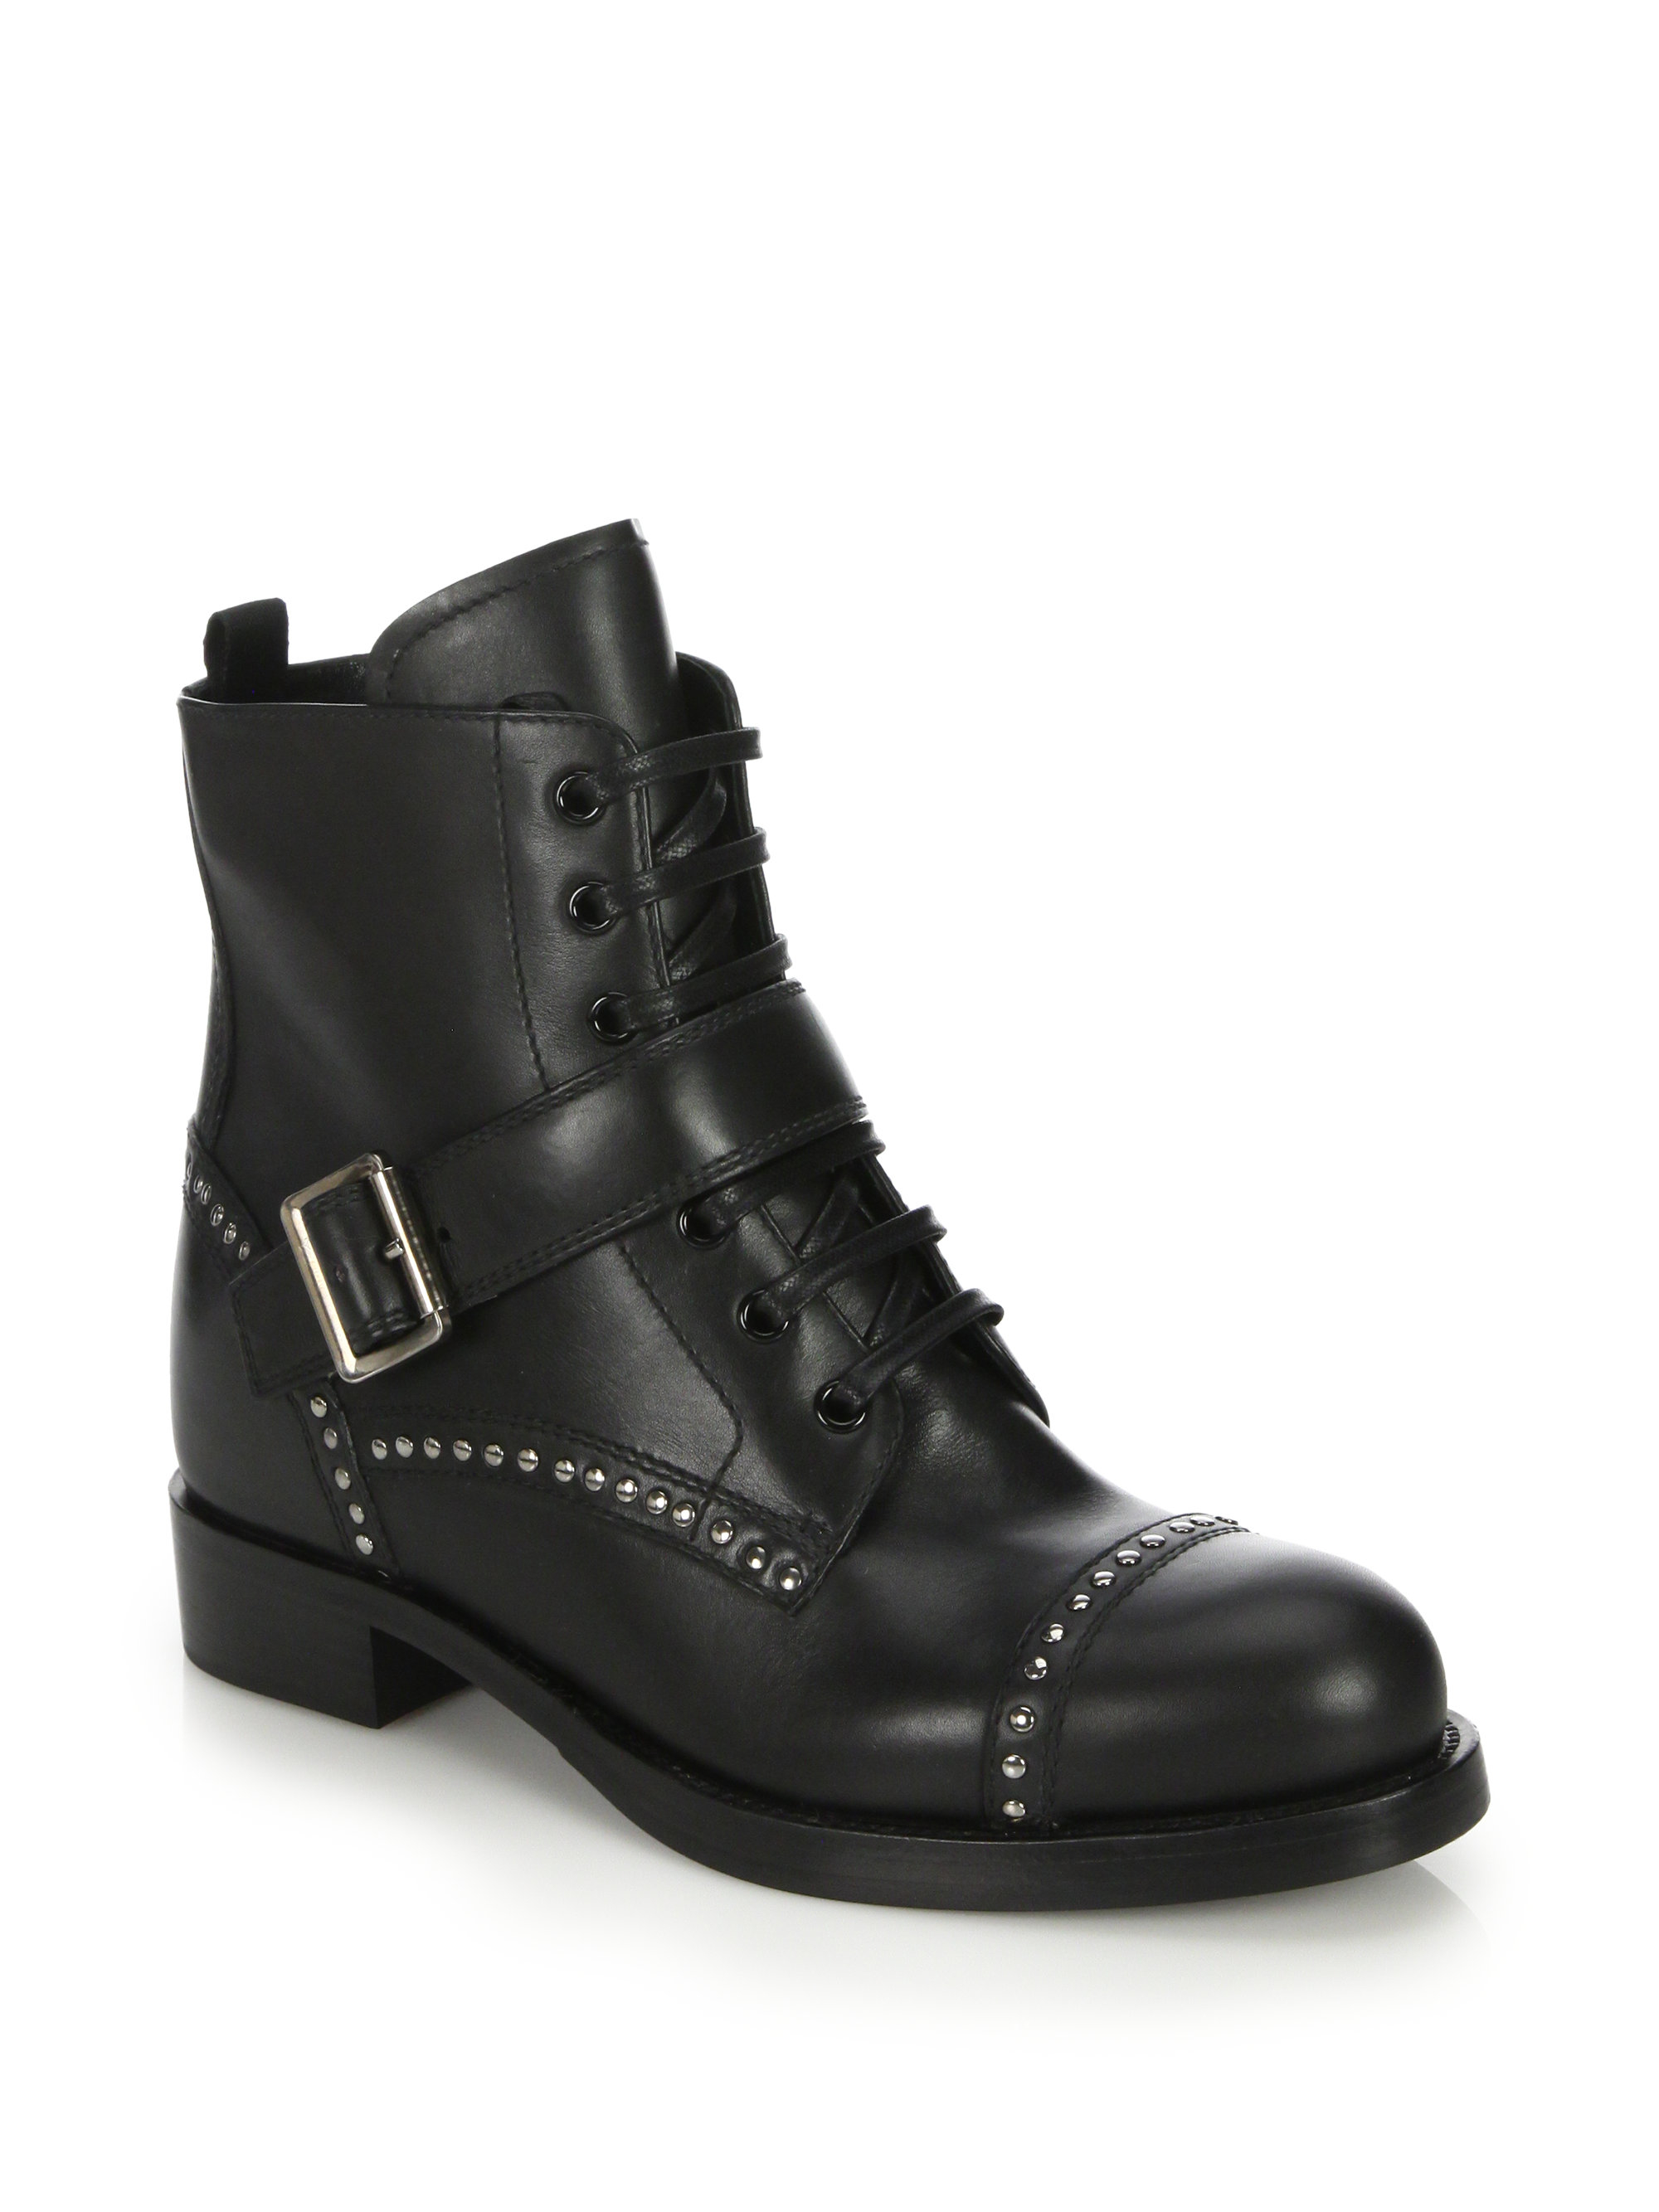 Prada Studded Leather Ankle Boots in Black | Lyst